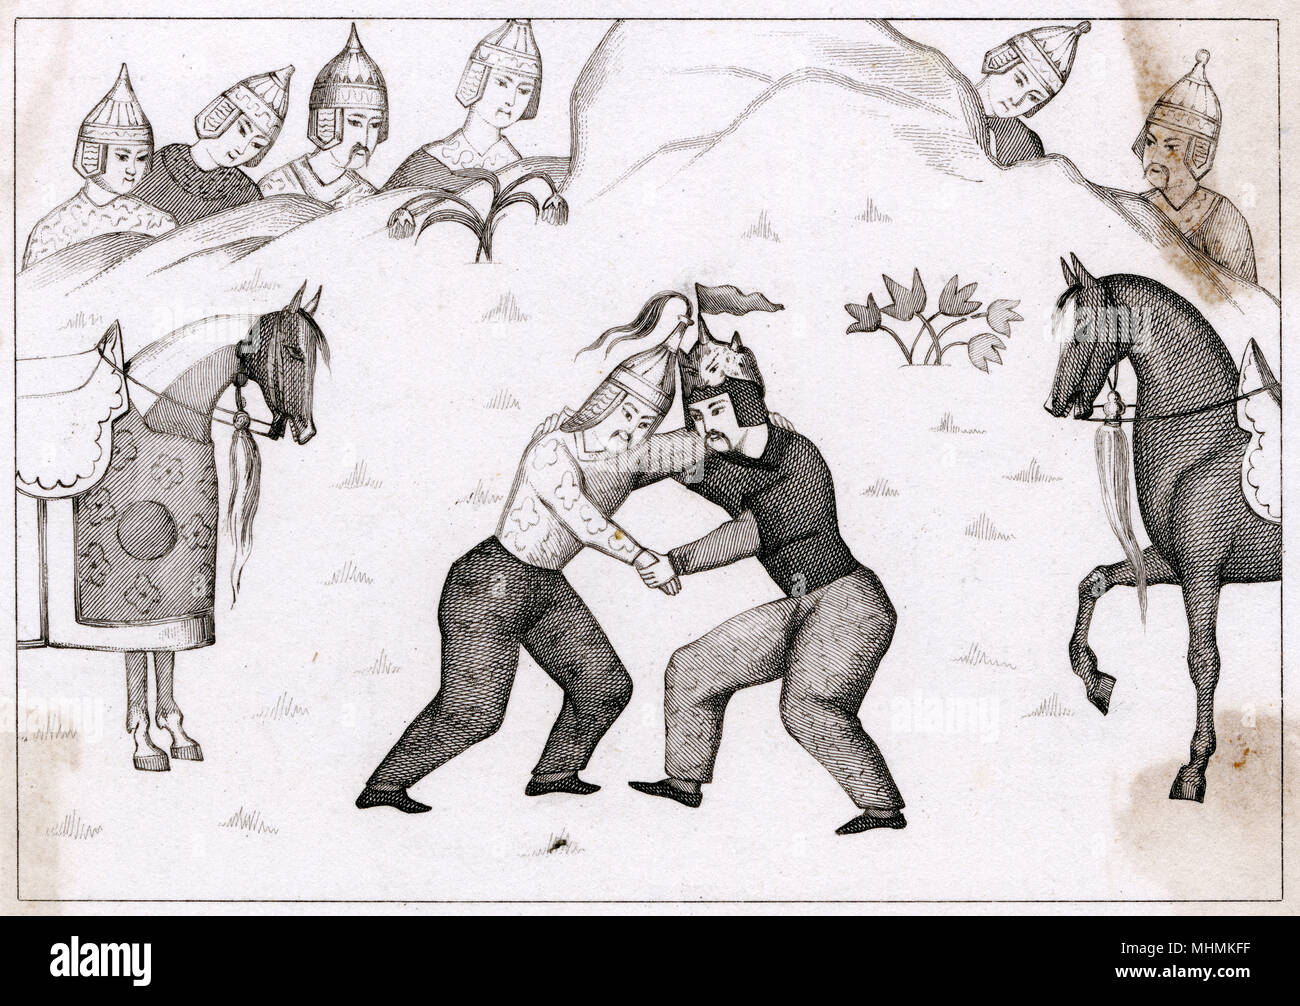 Persian wrestlers struggle against each other, watched by several soldiers.       Date: ancient - Stock Image